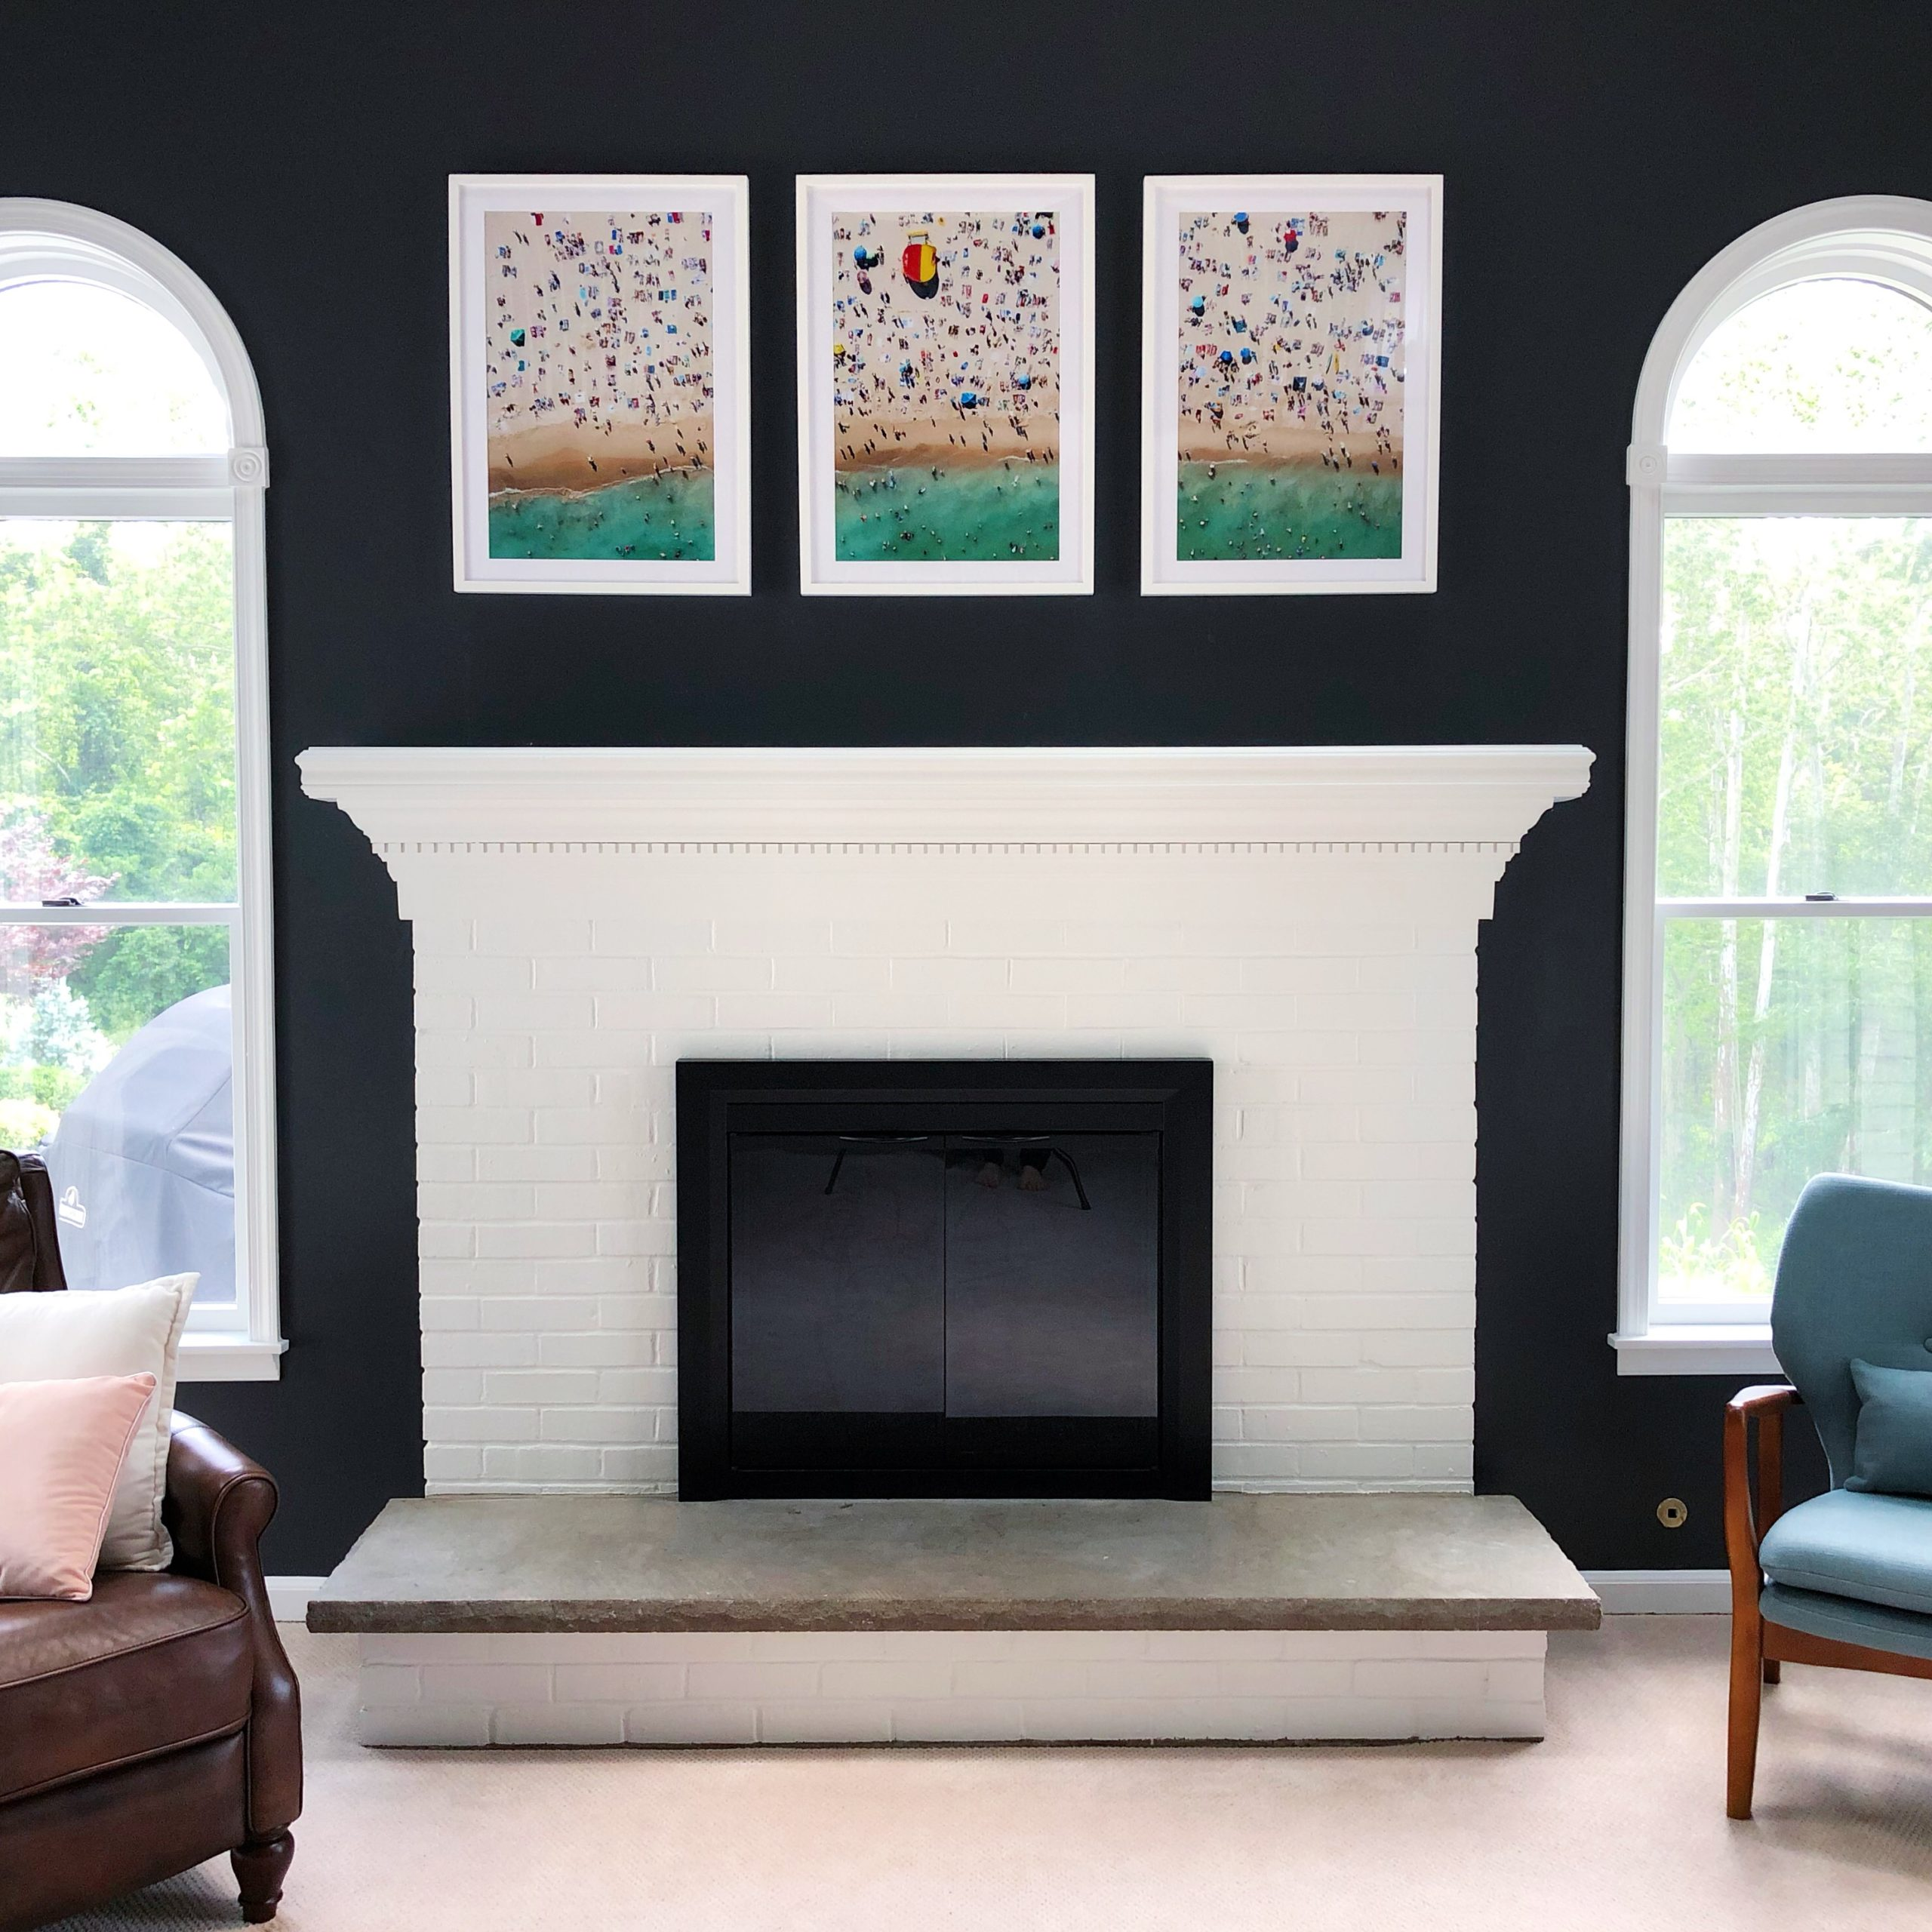 How to Paint a Brick Fireplace and Mantle